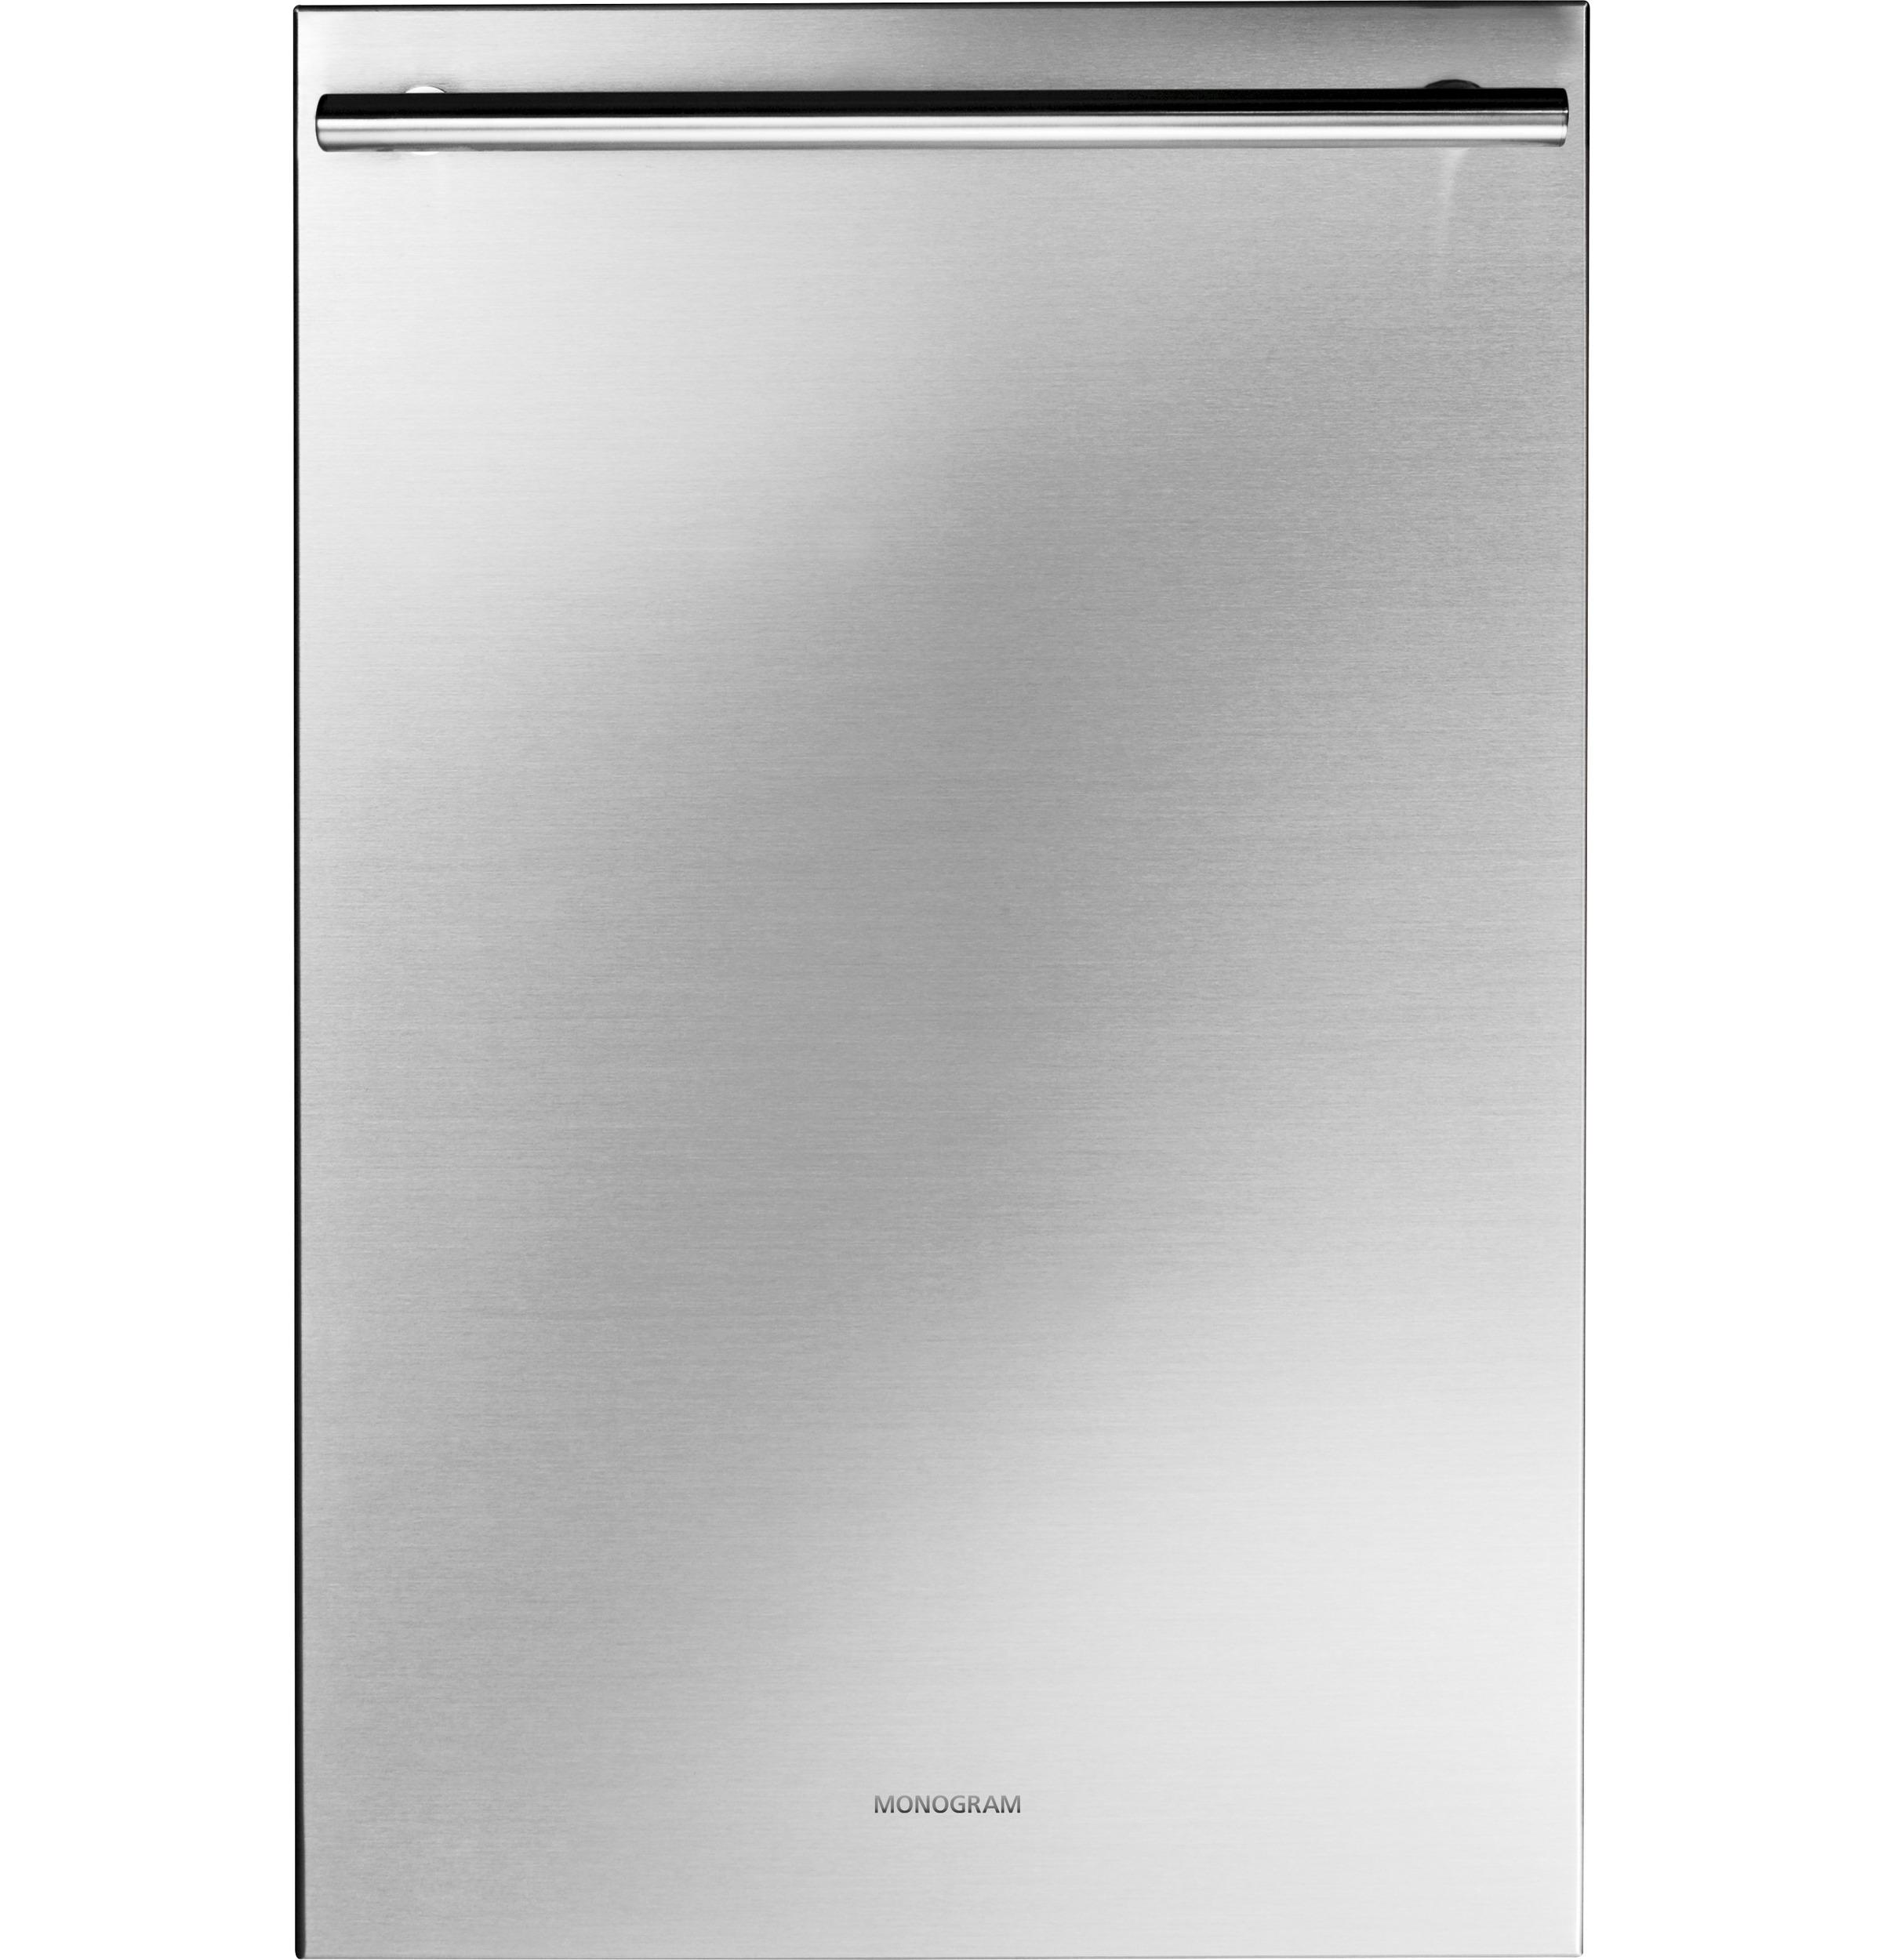 zdt165sslss in stainless steel by ge appliances in bend or rh jbbend com GE Monogram Appliances Parts Manual GE Monogram 206500 Dishwasher Heating